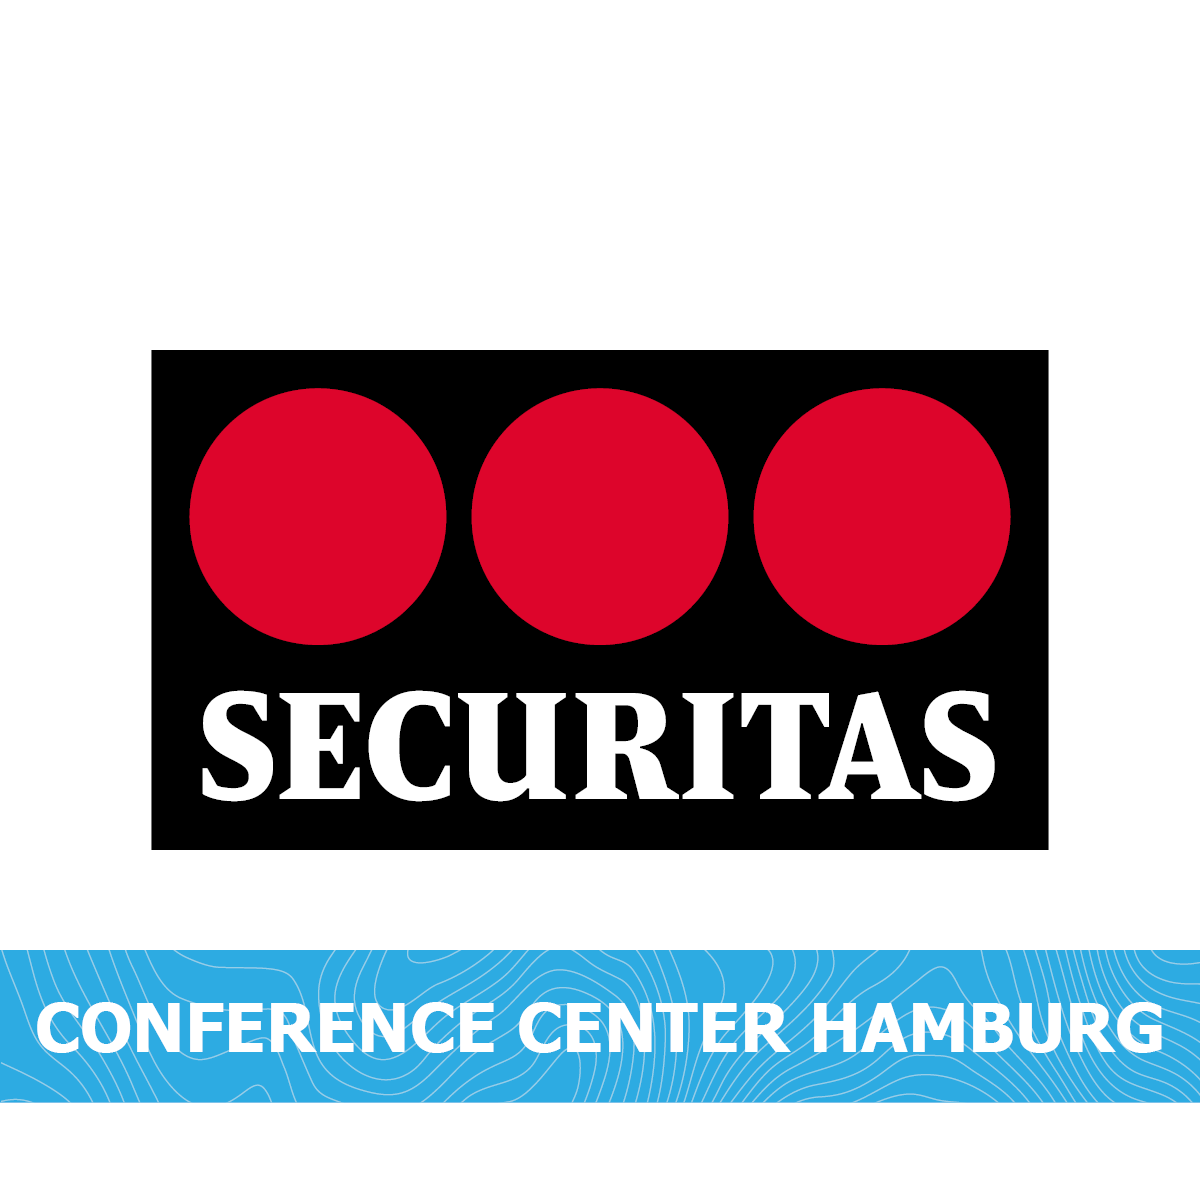 Securitas Conference Center